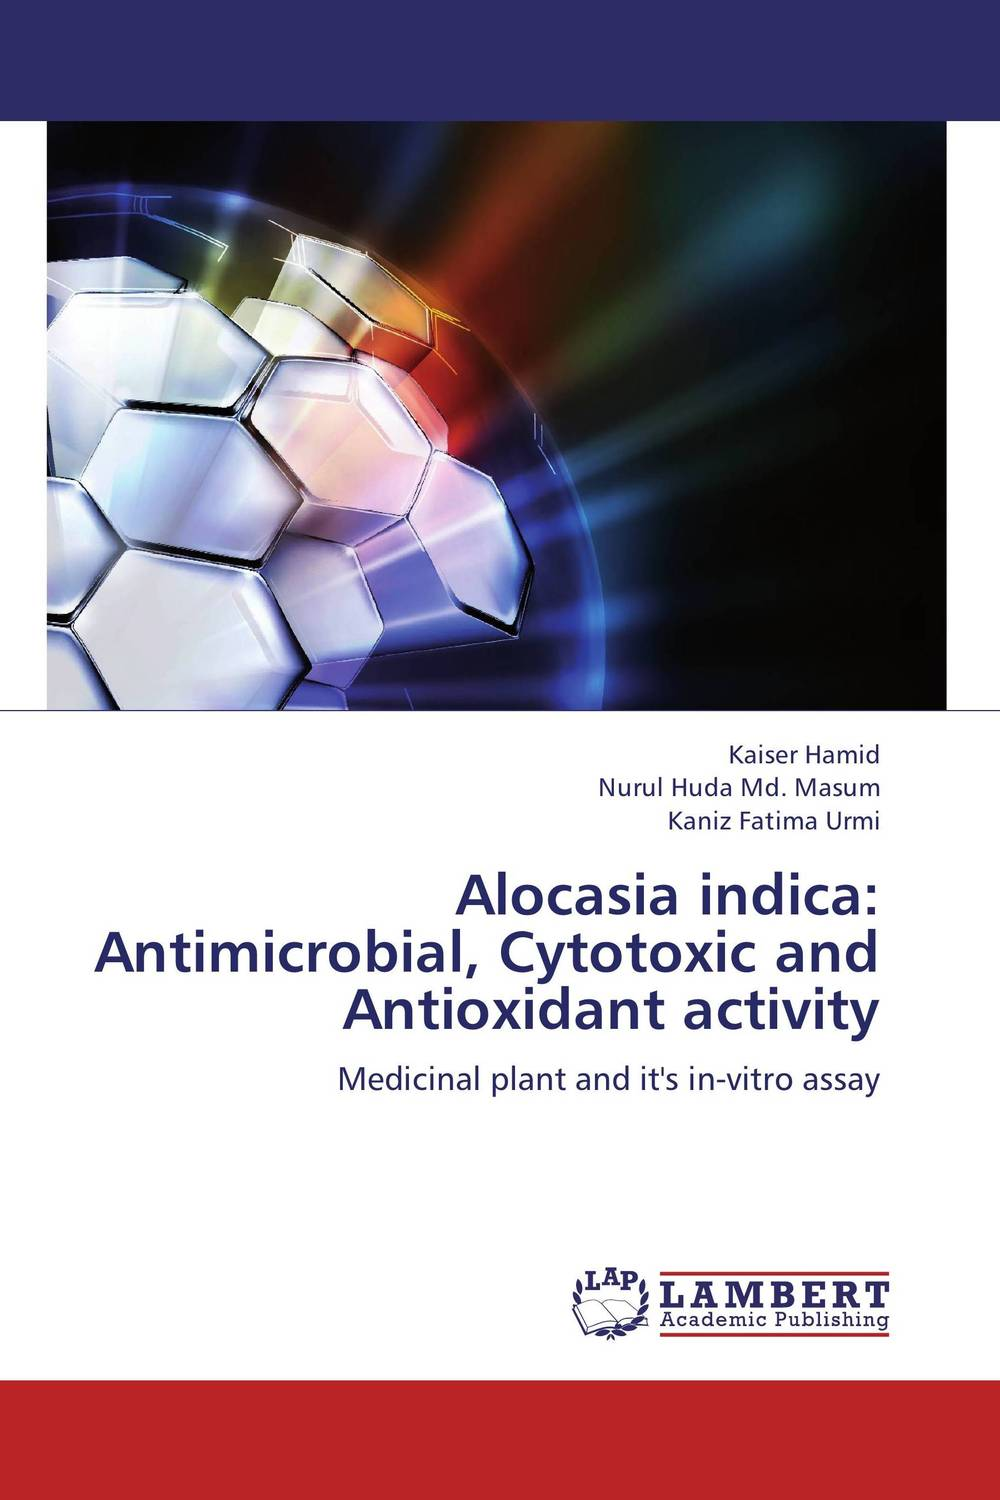 Alocasia indica: Antimicrobial, Cytotoxic and Antioxidant activity anil arjun hake sanjay jha and suman kumar jha molecular and biochemical characterization of karanja derris indica